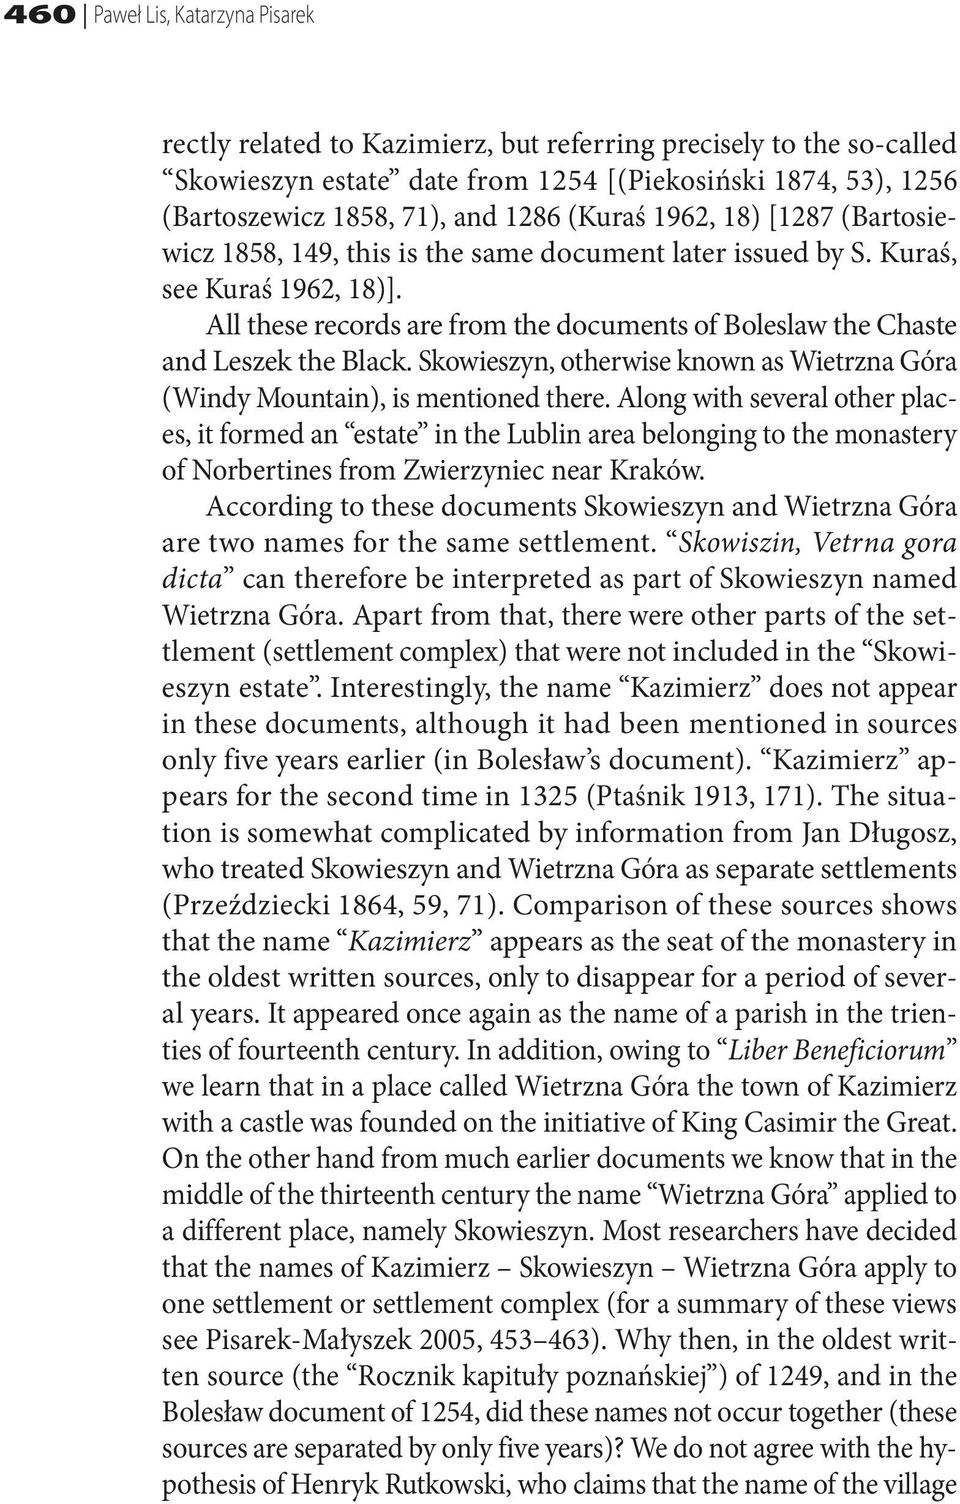 All these records are from the documents of Boleslaw the Chaste and Leszek the Black. Skowieszyn, otherwise known as Wietrzna Góra (Windy Mountain), is mentioned there.